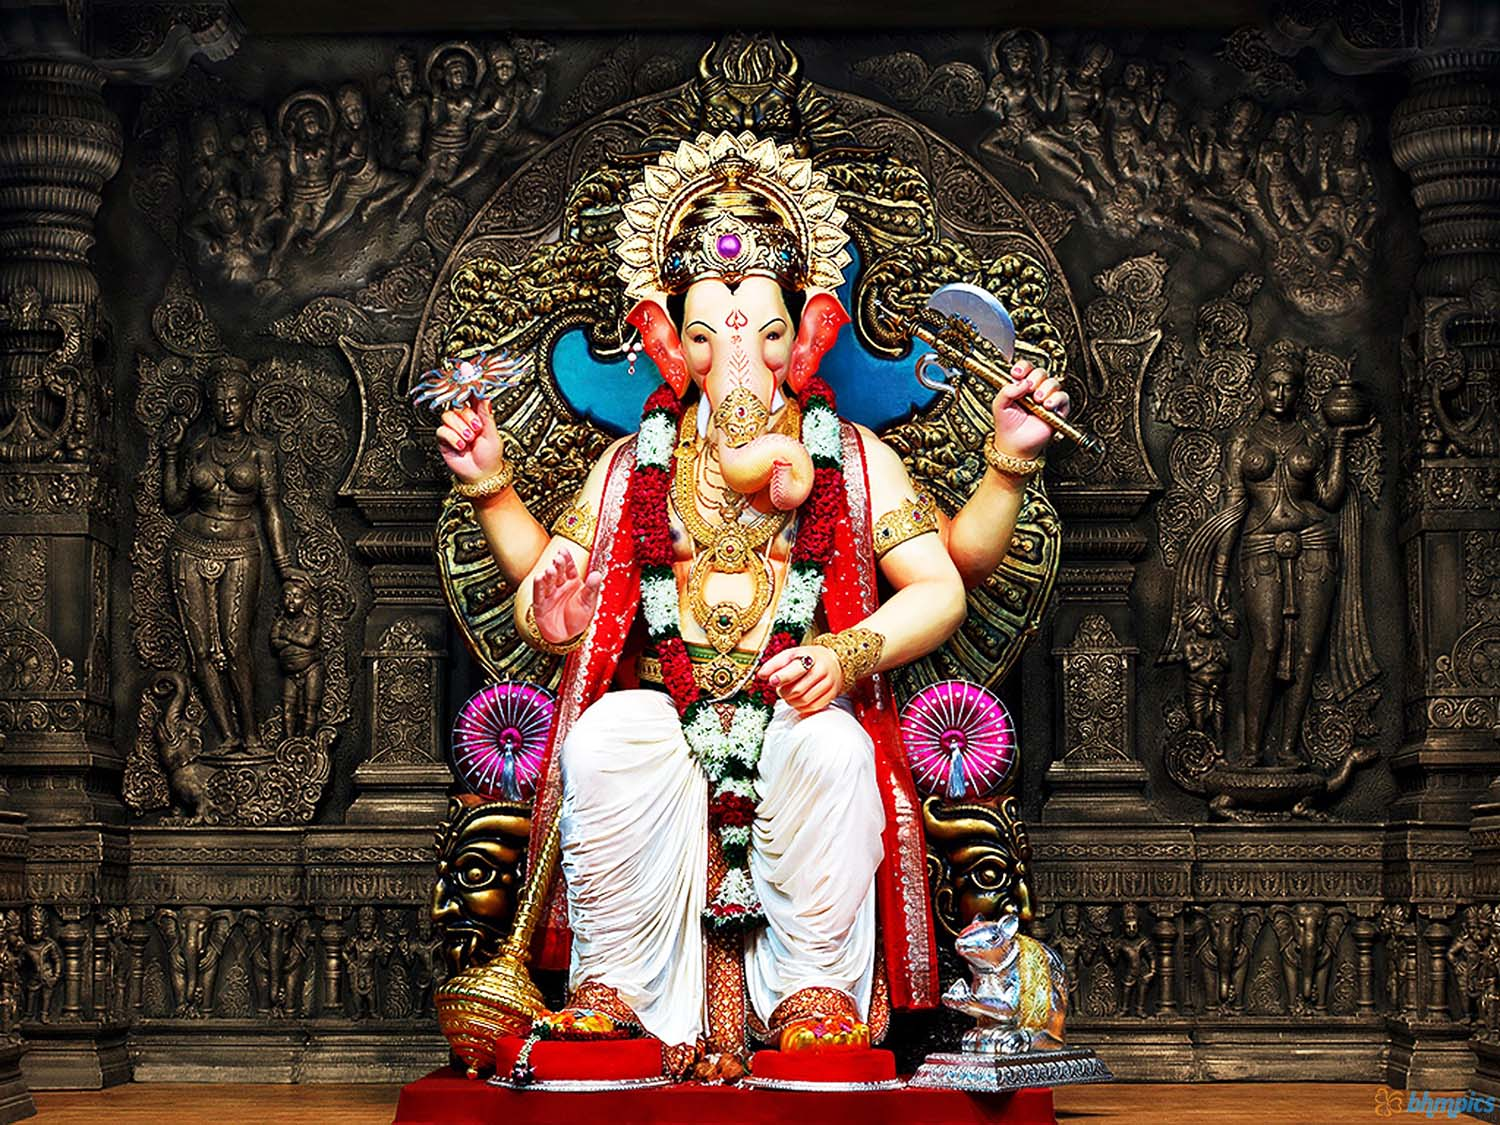 Ganpati God Image sitting on Throne!